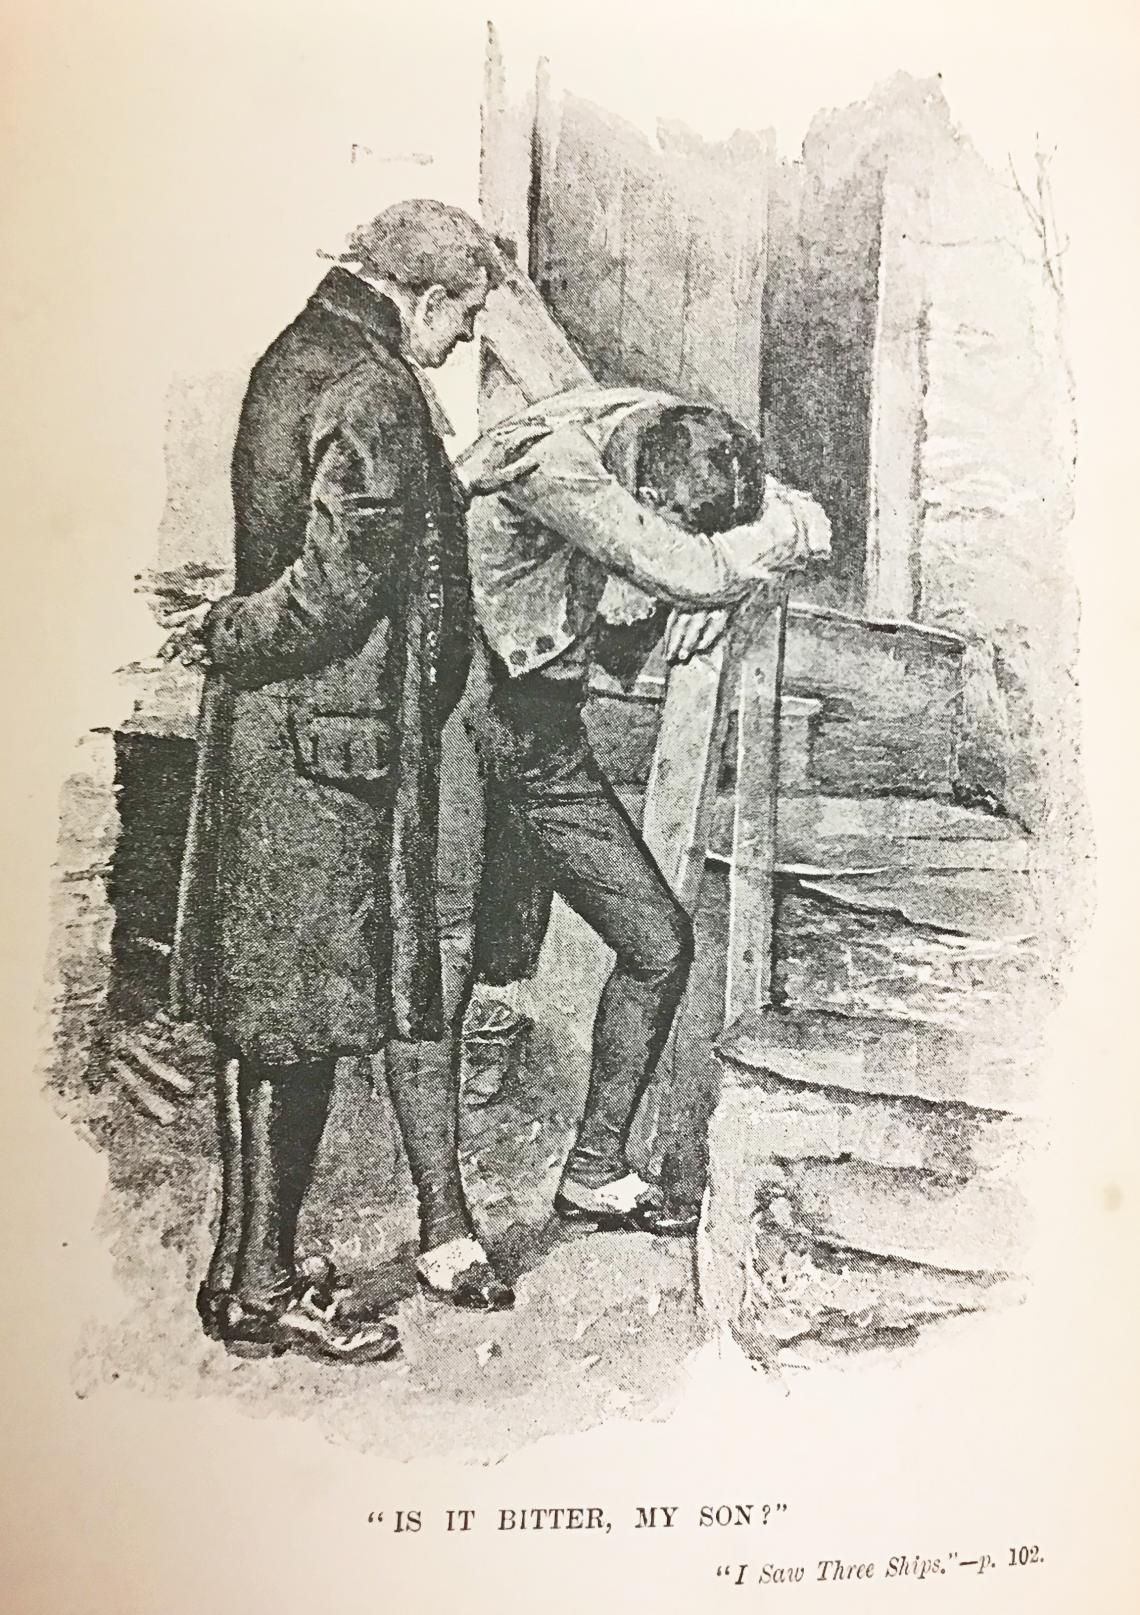 Illustration of an older man talking to a younger man who appears in distress